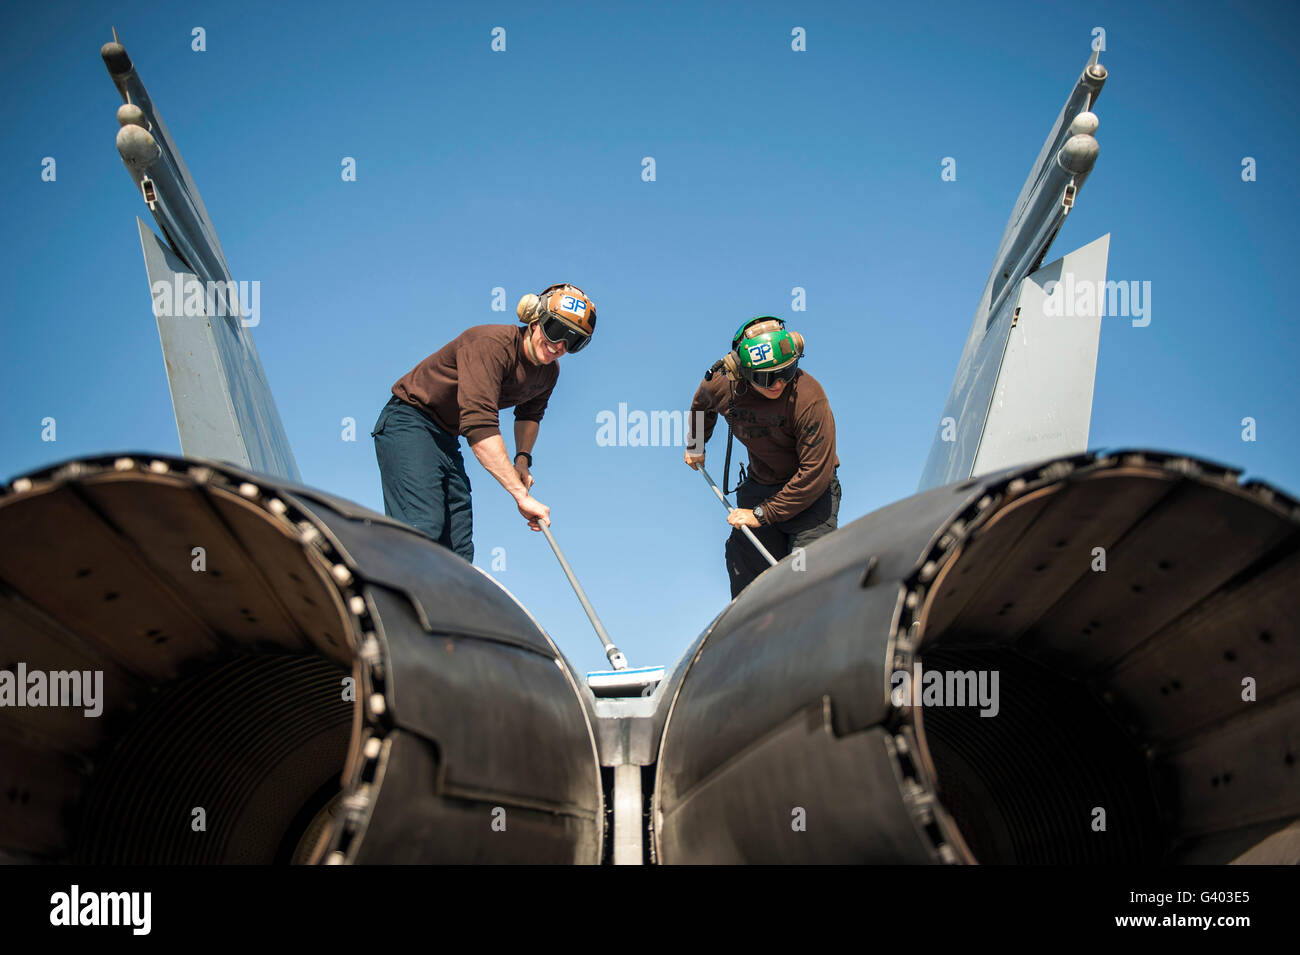 Aviation Machinist's Mates clean an F/A-18C Hornet. - Stock Image